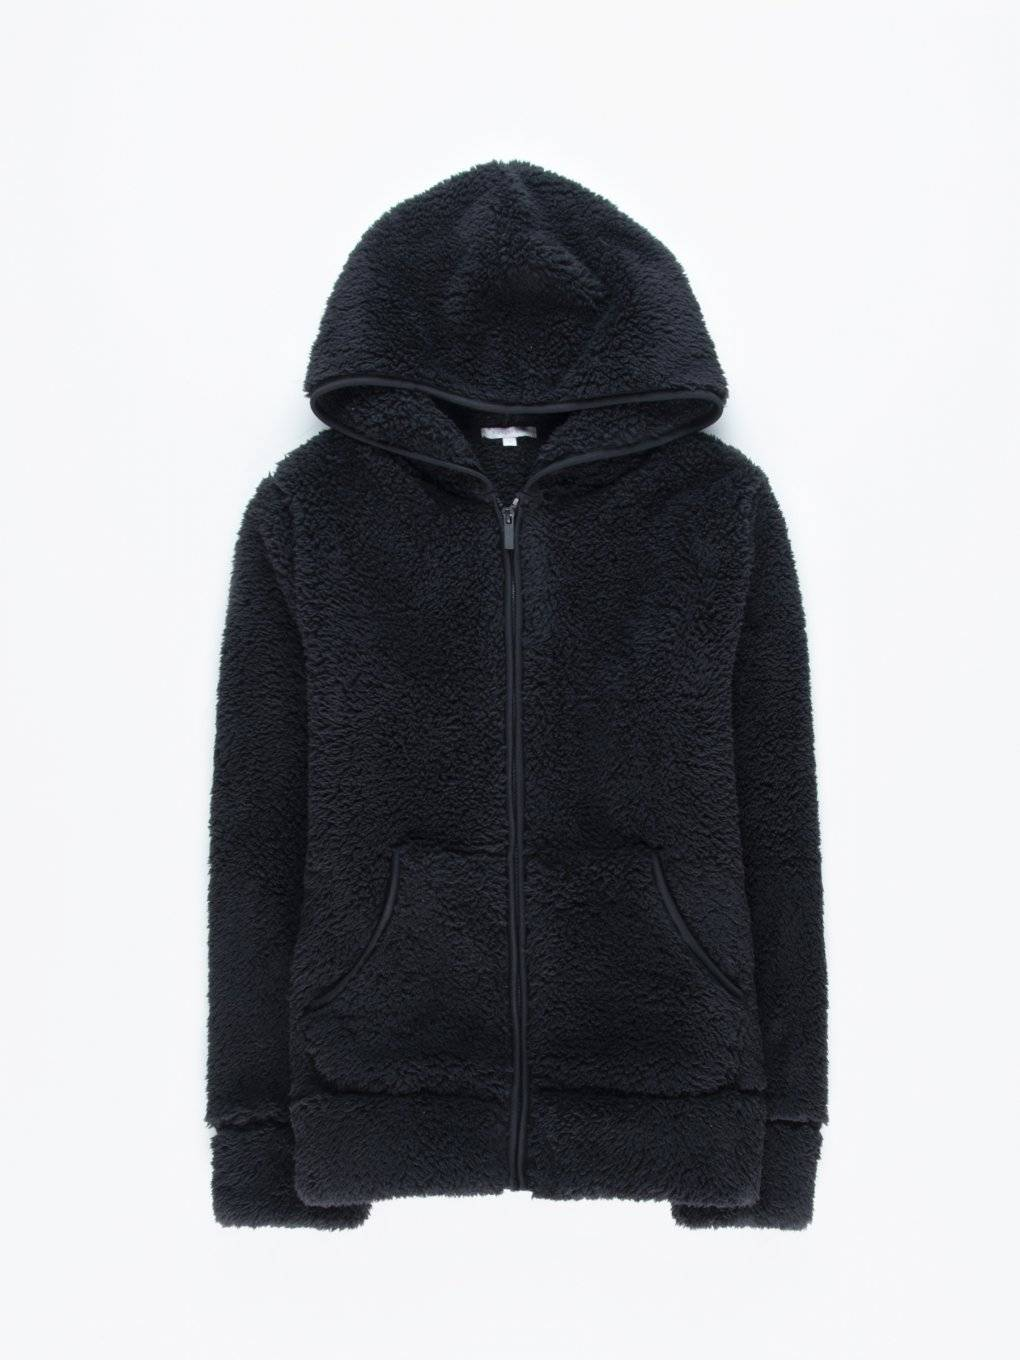 Fluffy zip-up hoodie